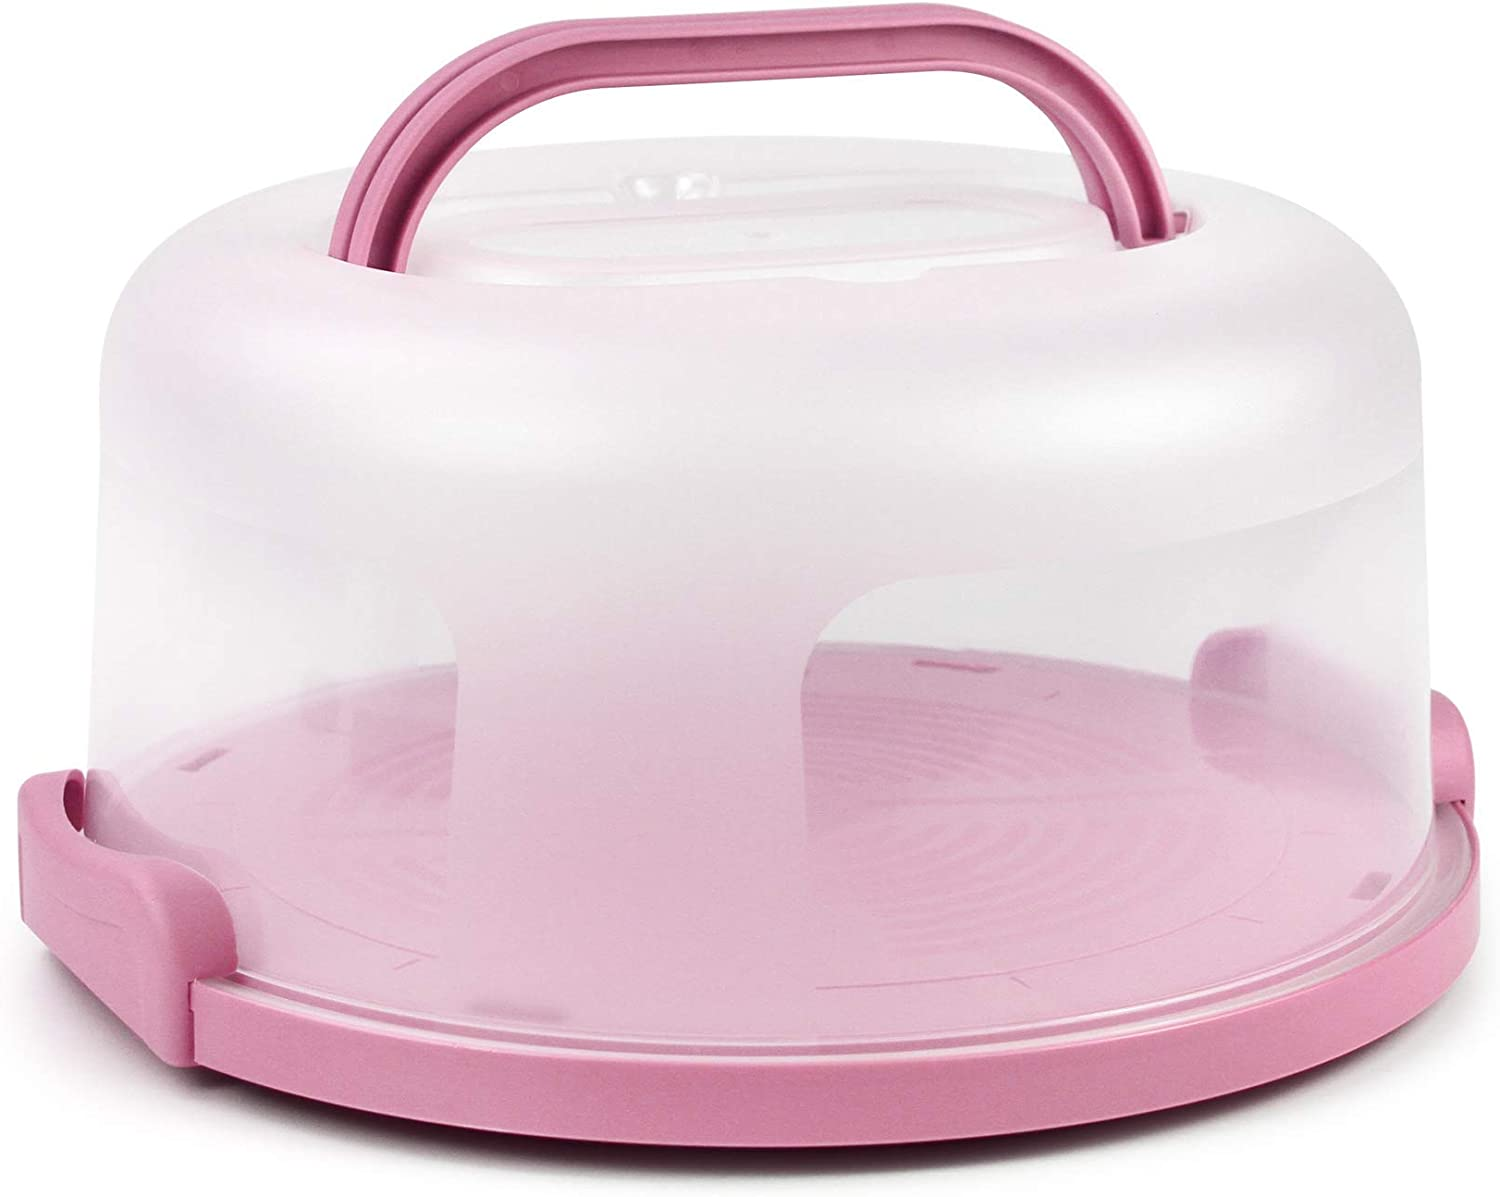 Cake Carrier with Handle 10in Cake Stand Pink Cake Holder Cover Round Container for 10in or Less Size Pink